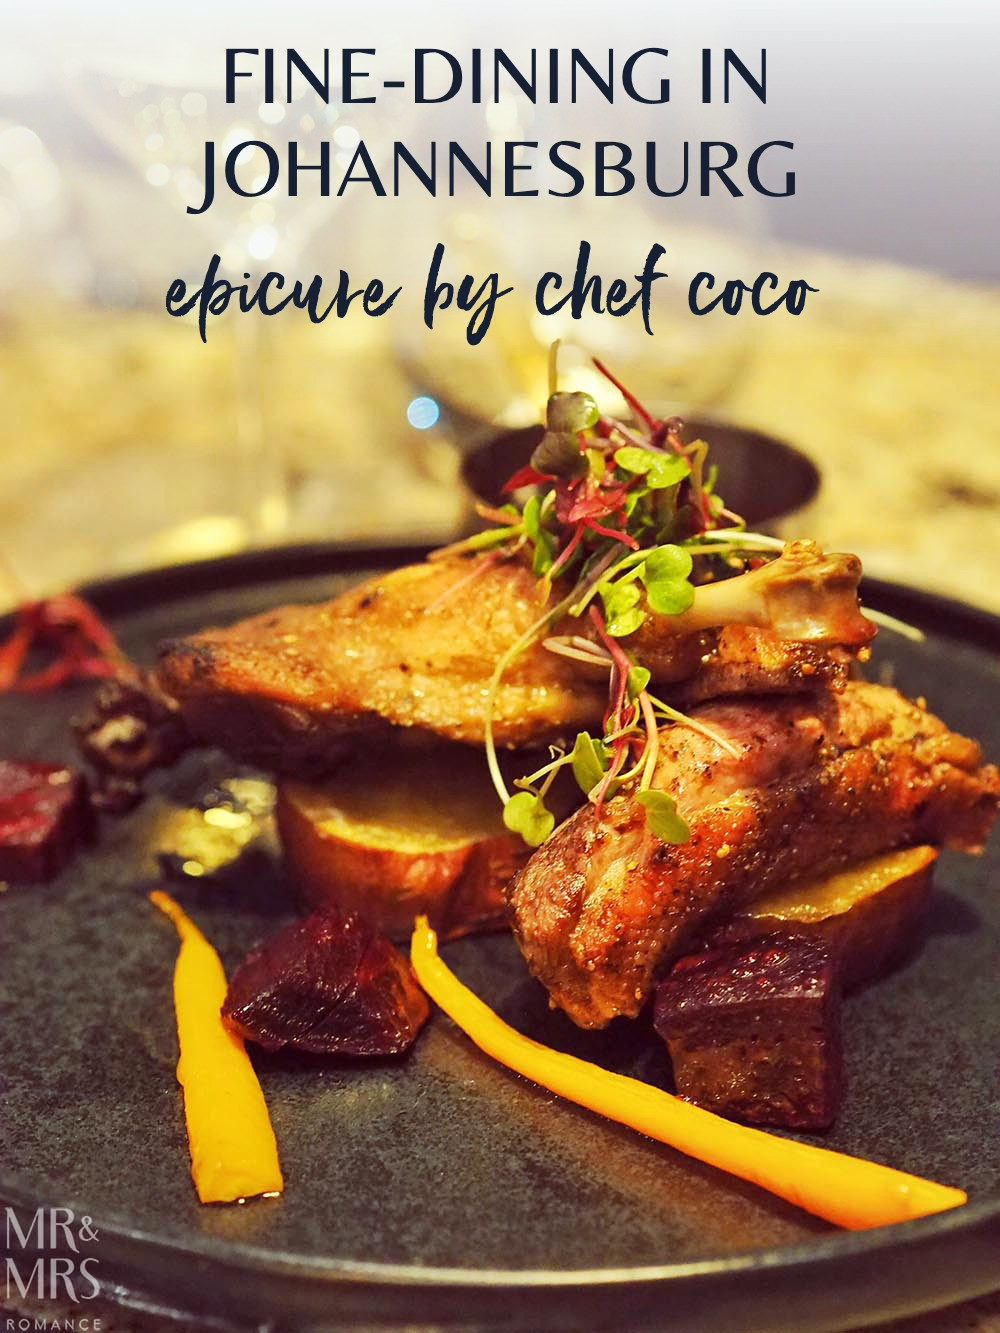 Where to eat in Johannesburg South Africa - fine-dining at Epicure by Chef Coco